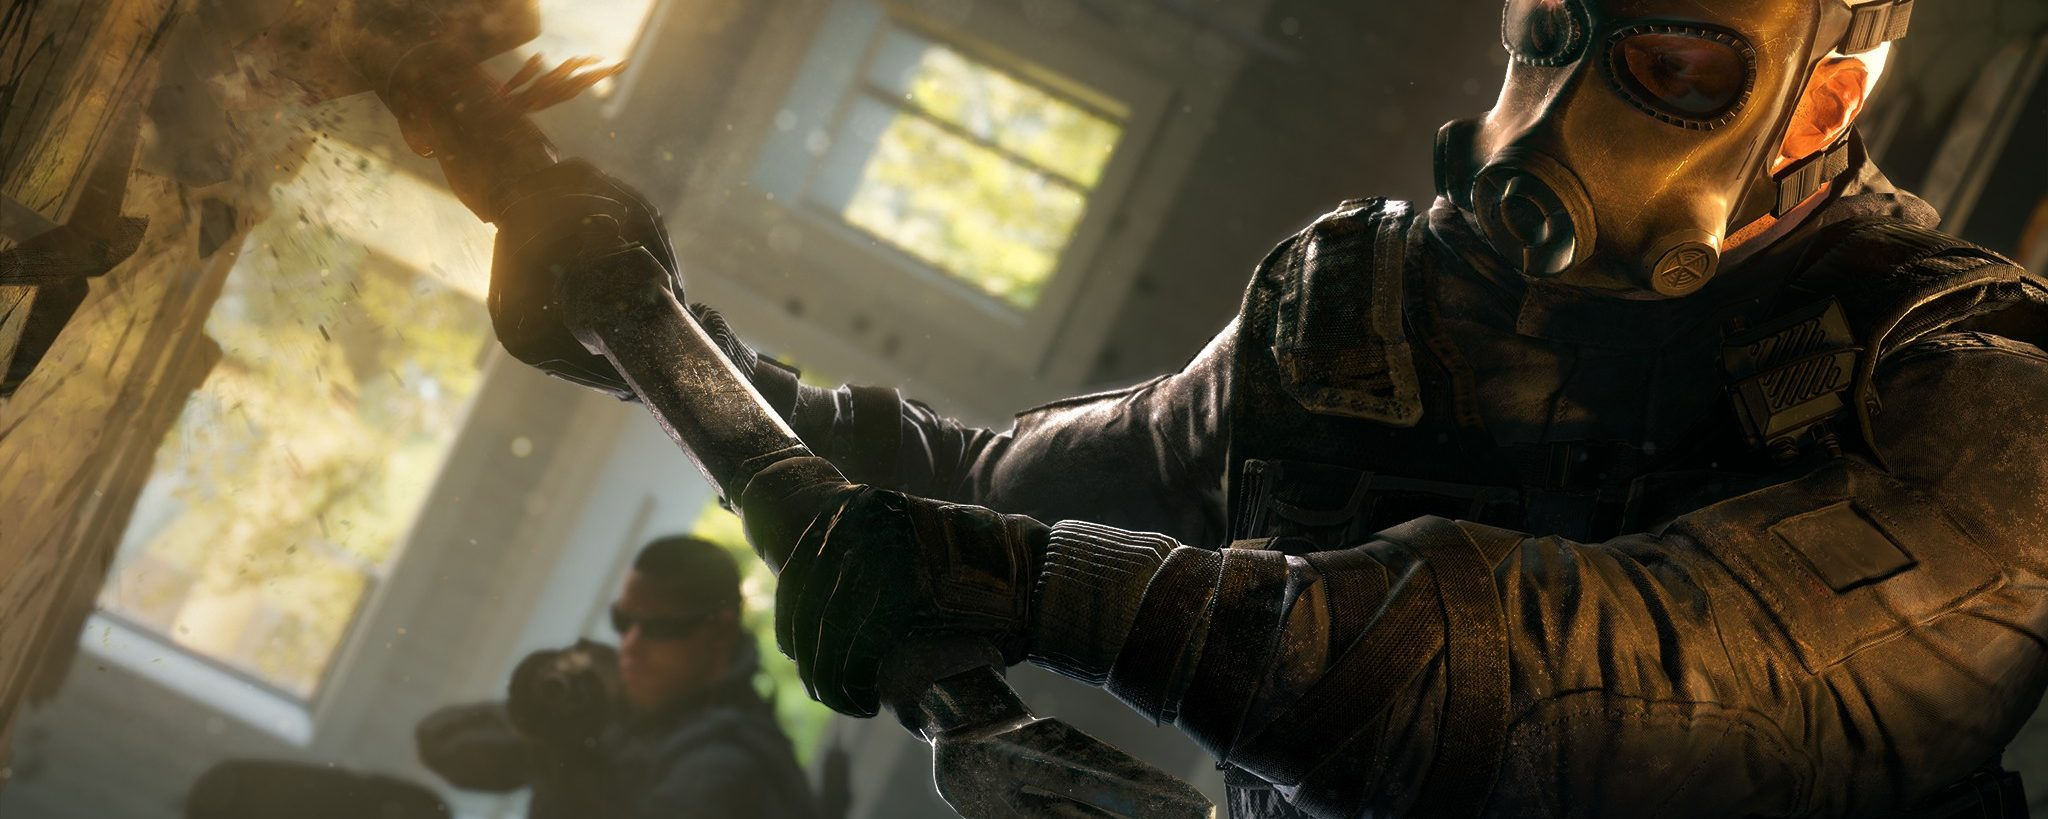 Rainbow Six Siege Won't Be Getting New Game Modes, Aims For '50-100 Operators' Instead